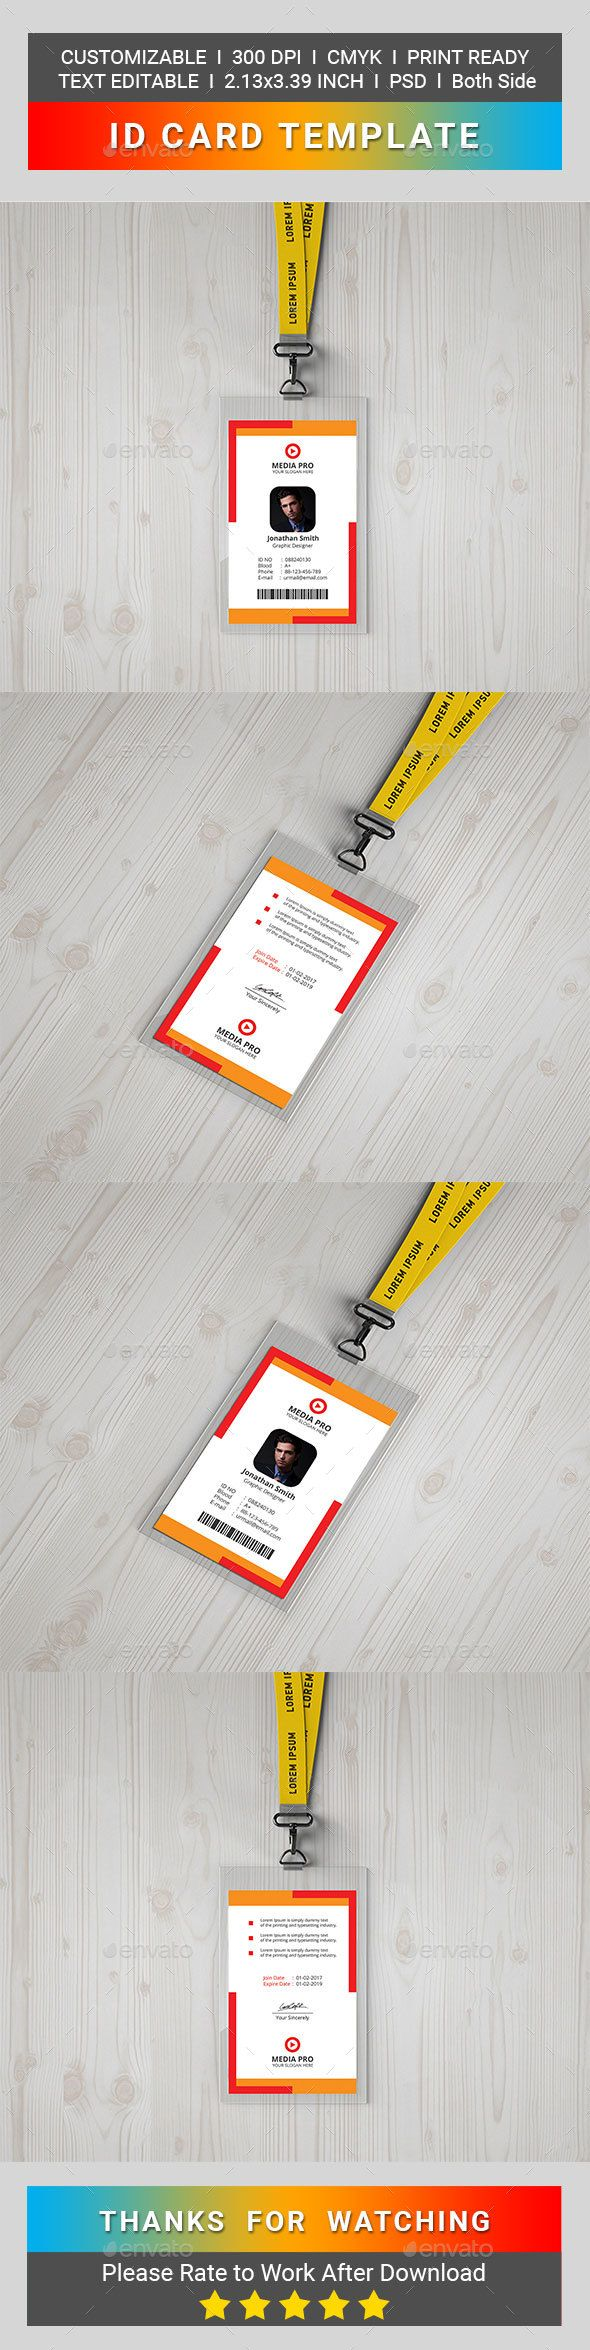 ID Card | Print templates, Template and Card templates